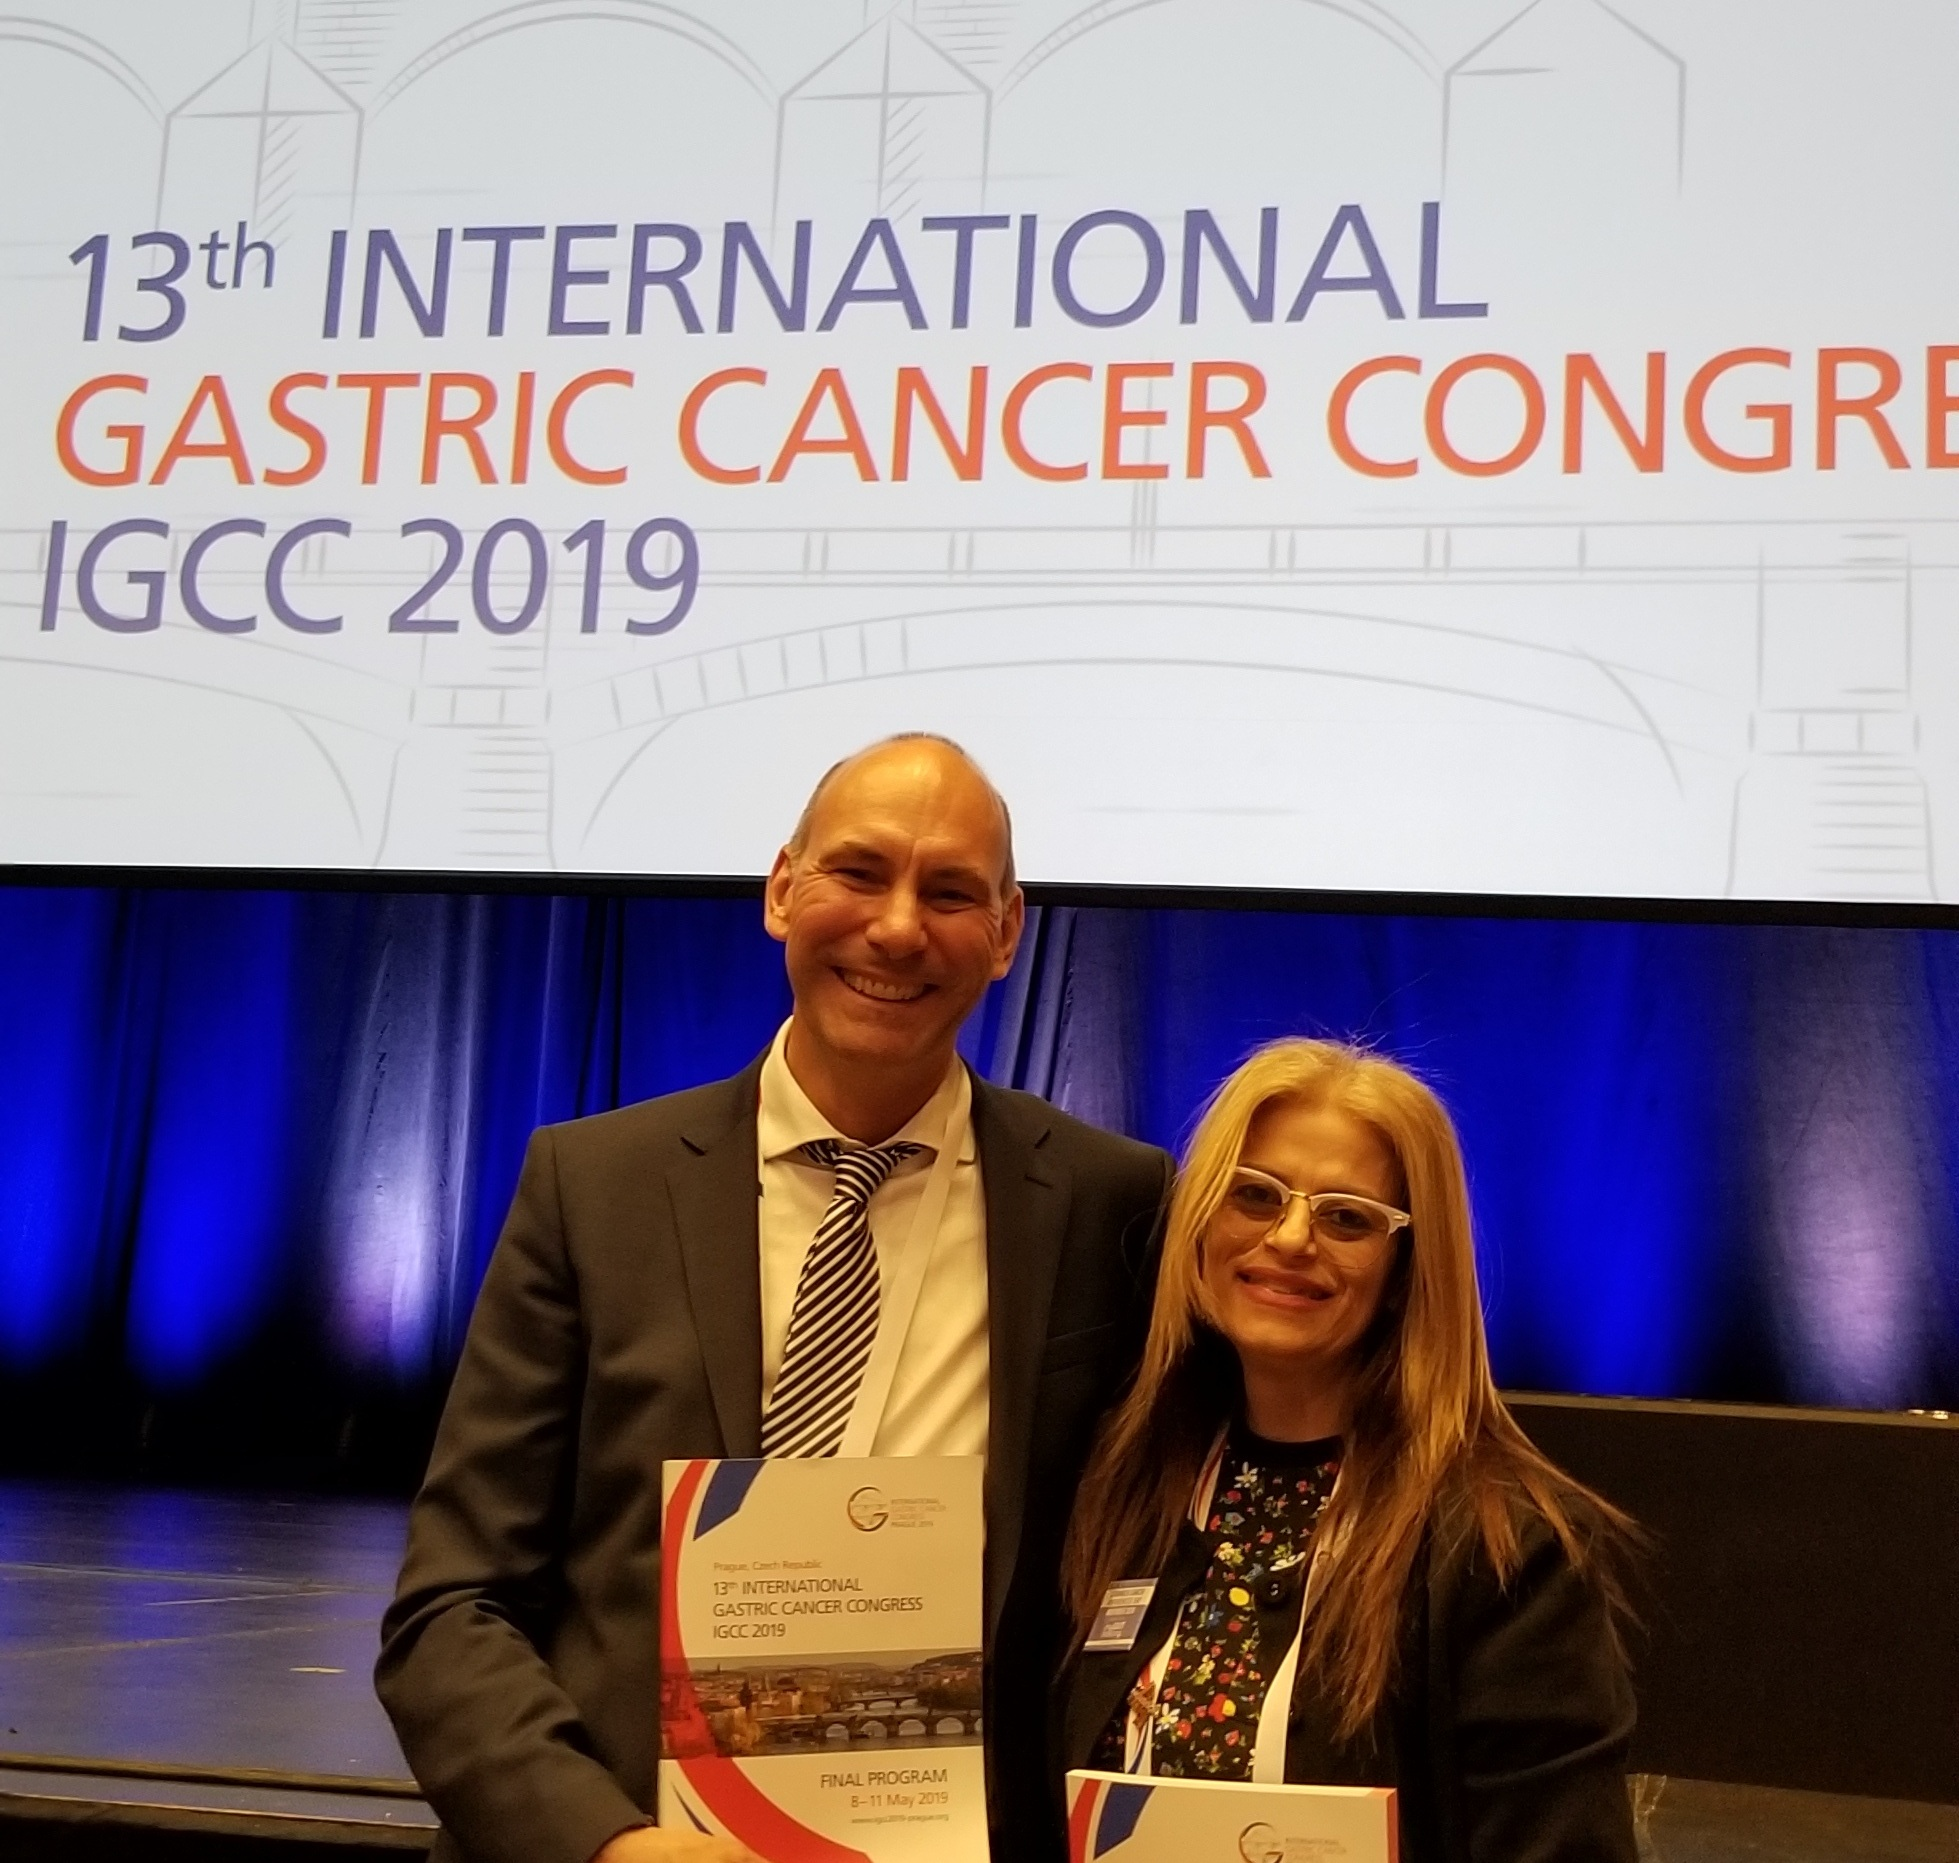 The Chair of the 13th International Gastric Cancer Congress, Dr. Florian Lordick of University Hospital Leipzig (Germany) and Teresa Tiano, Chair of My Gut Feeling